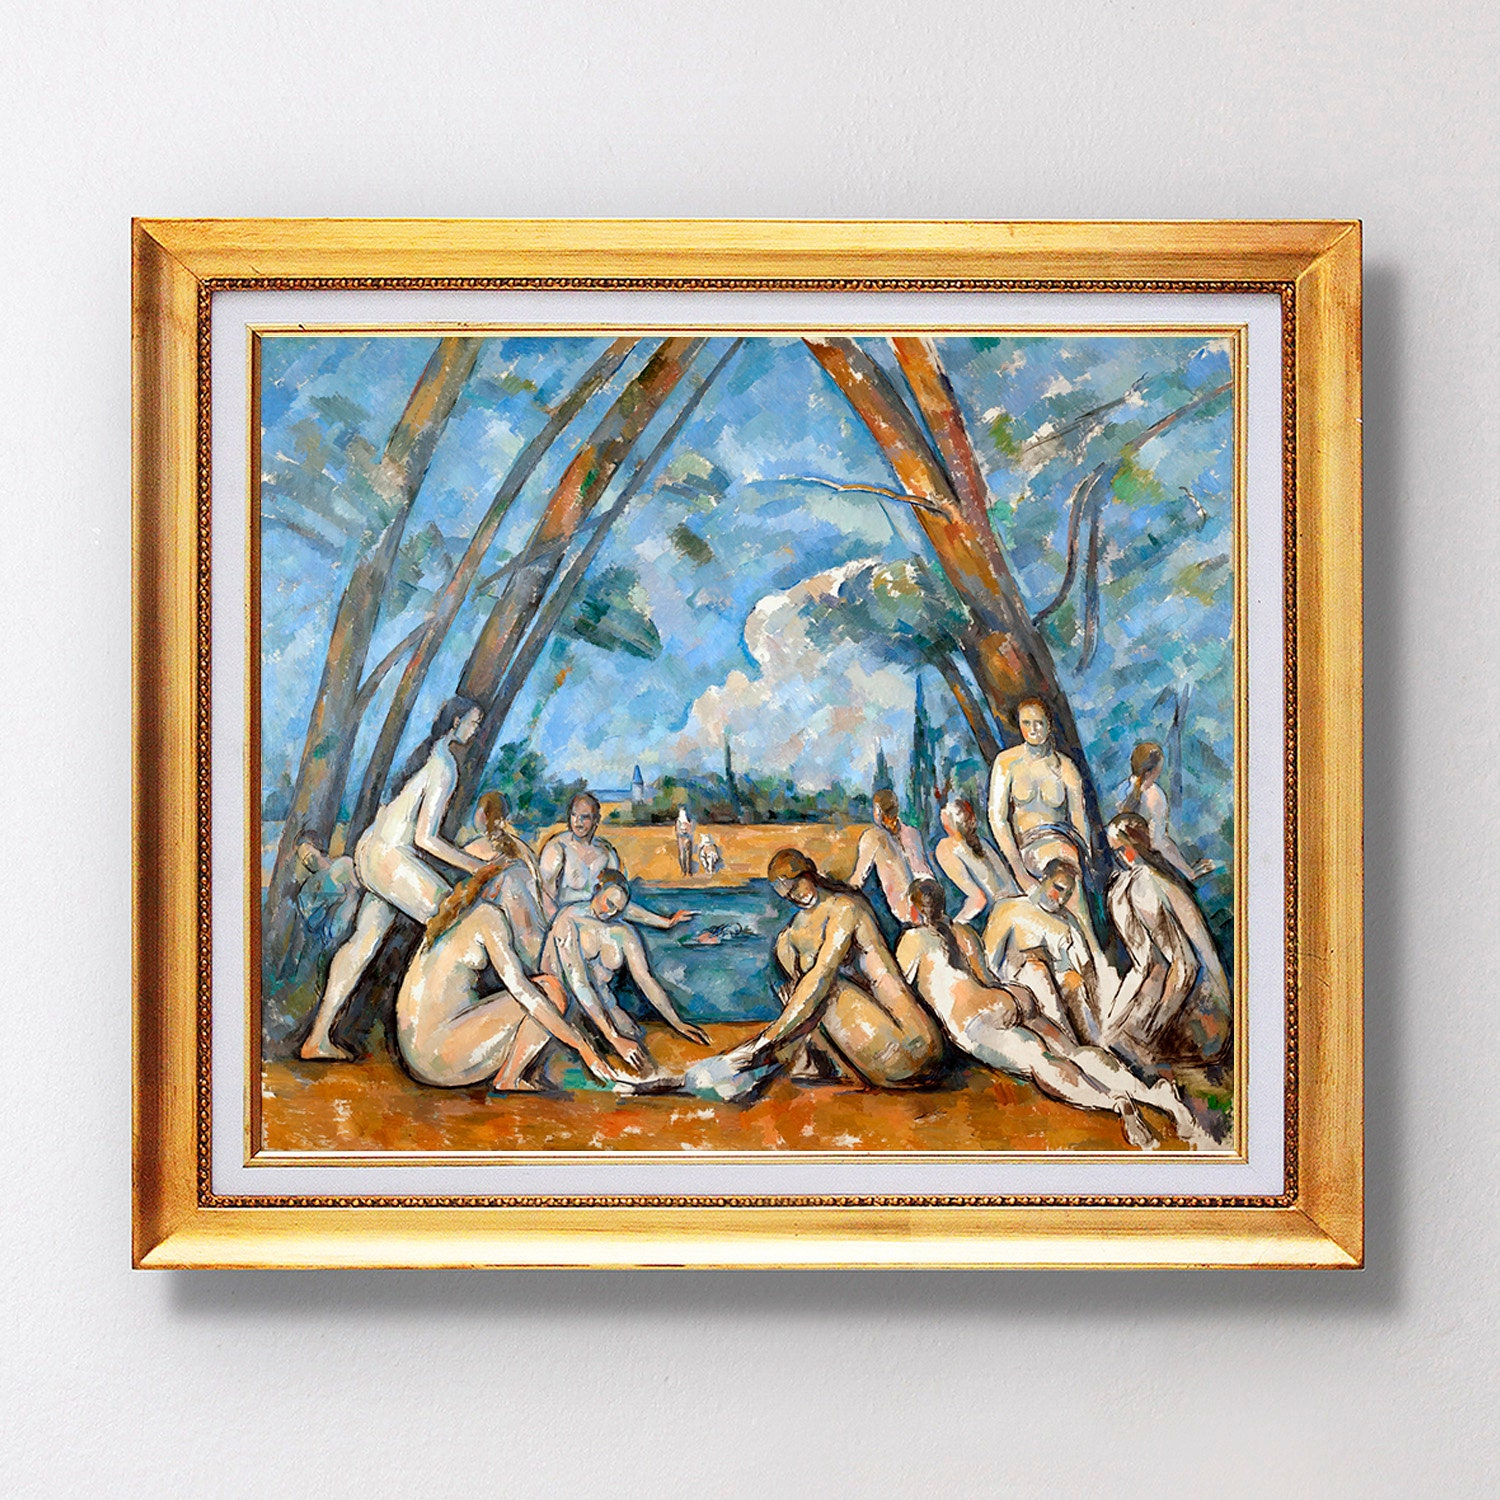 Paul cezanne the large bathers 1906 fine art glic e for Design your own bathers